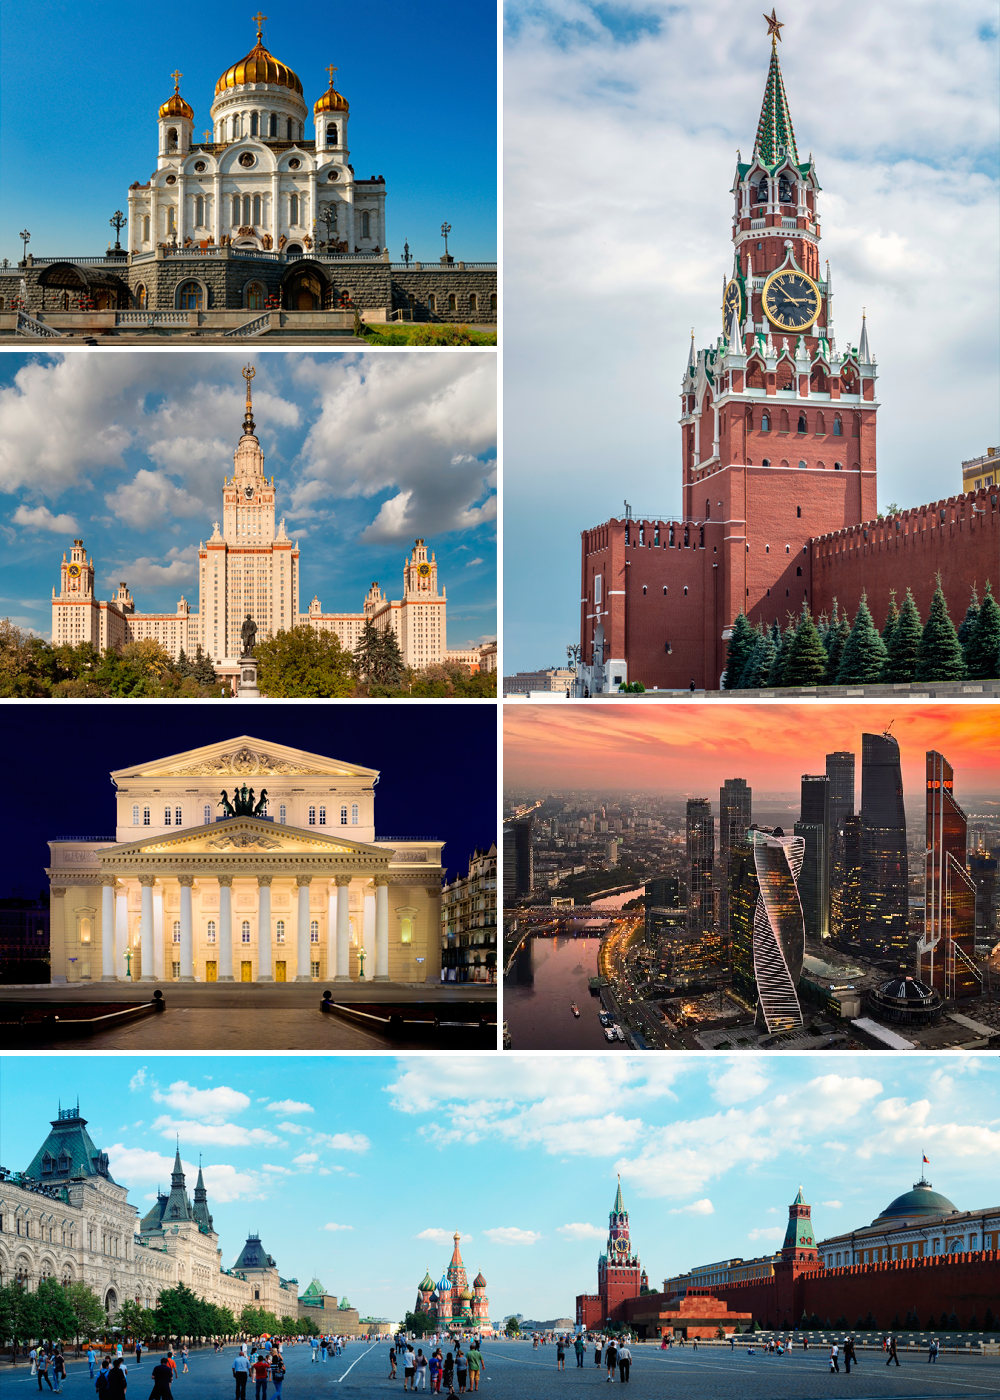 Sites of Moscow. Clockwise from top left: Cathedral of Christ the Saviour; Spasskaya Tower of the Moscow Kremlin; MIBC; Red Square, Saint Basil's Cathedral; Bolshoi Theatre; and Moscow State University